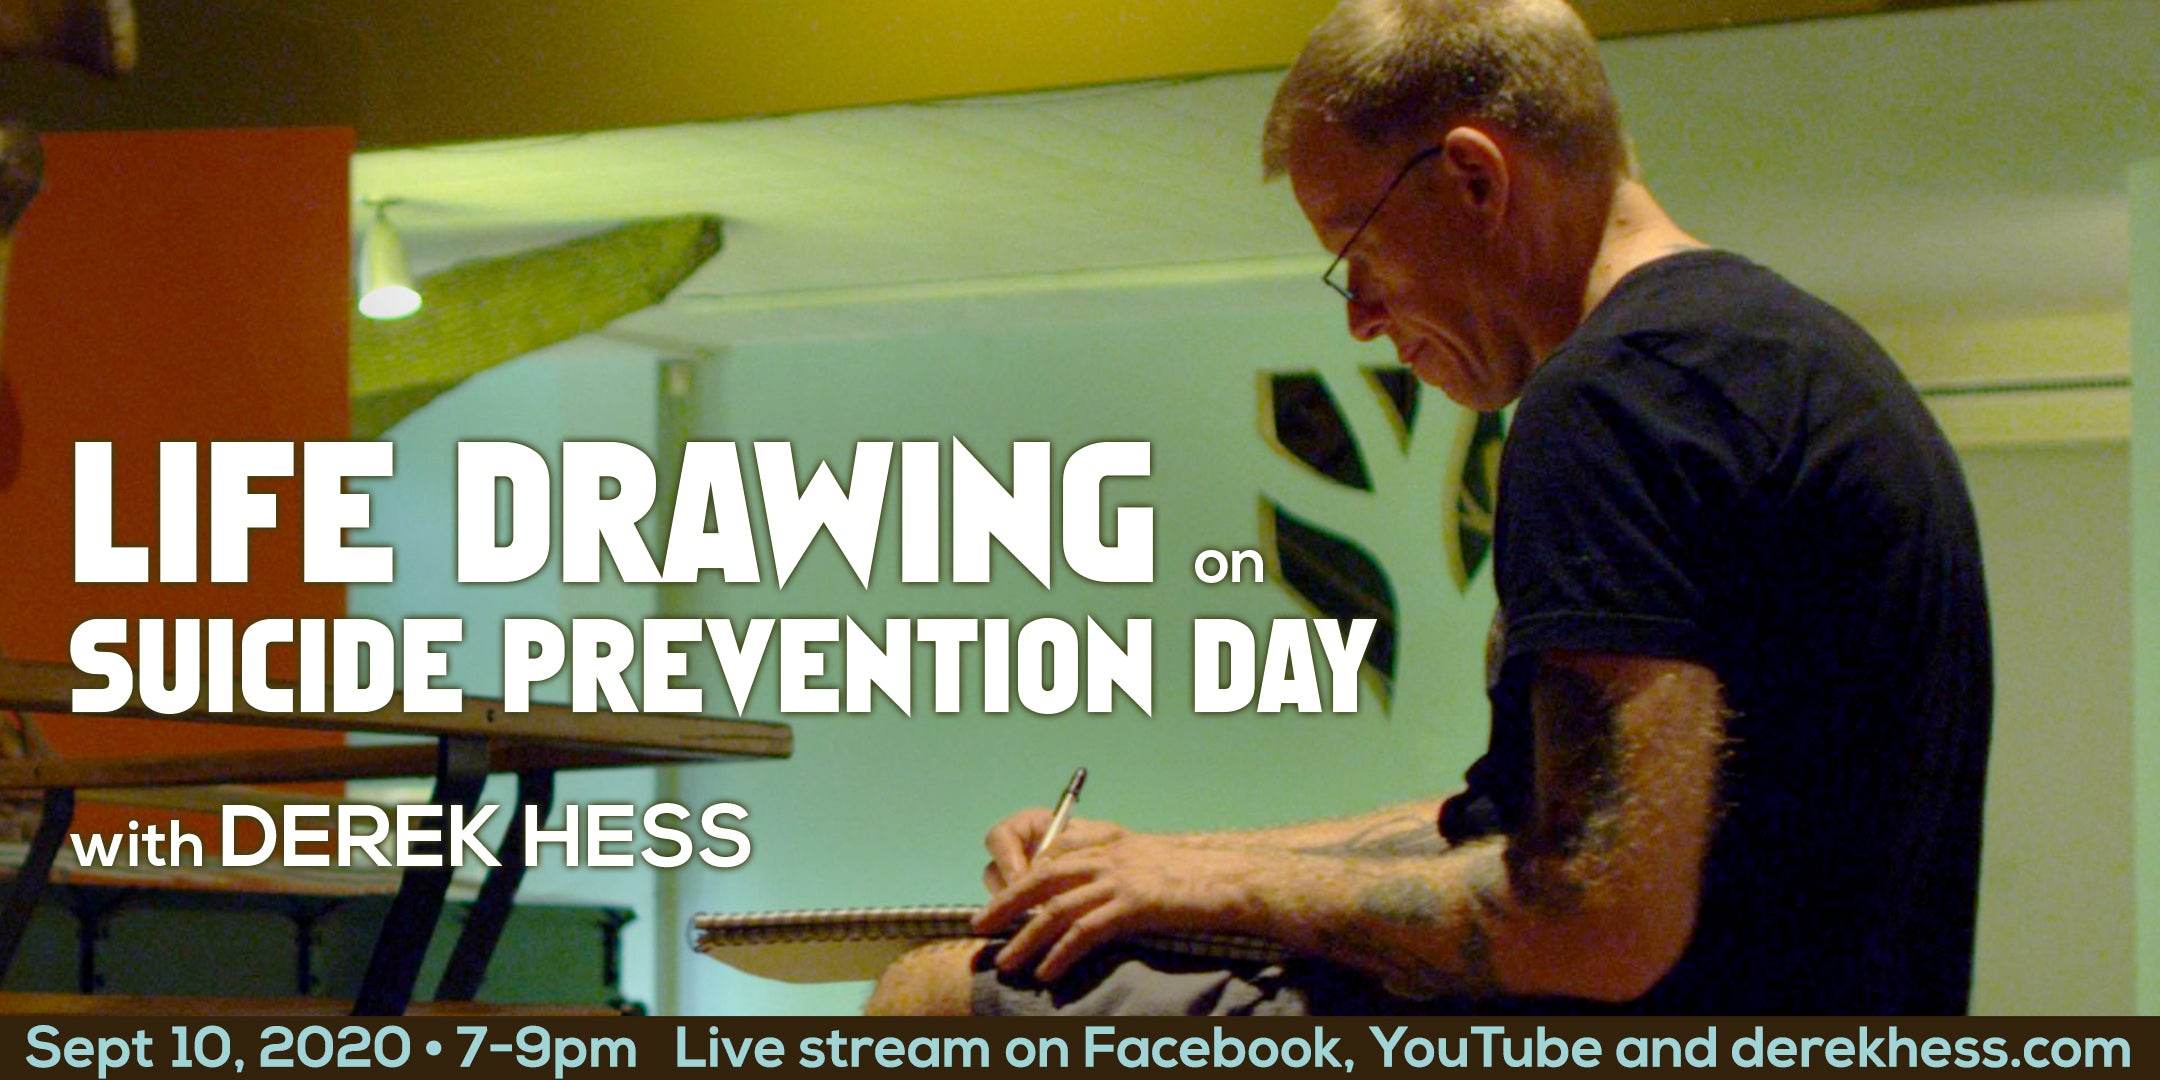 Free! Life Drawing on Suicide Prevention Day with Derek Hess